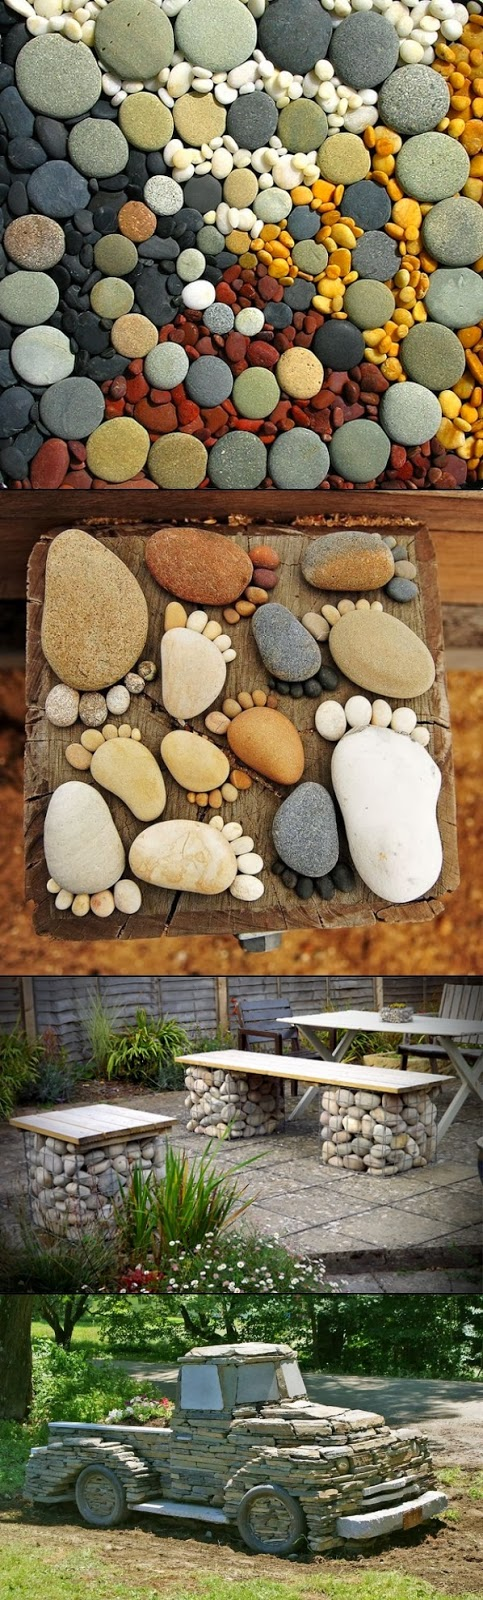 Home made diy2 easy garden diy projects with stones for Homemade garden decor crafts